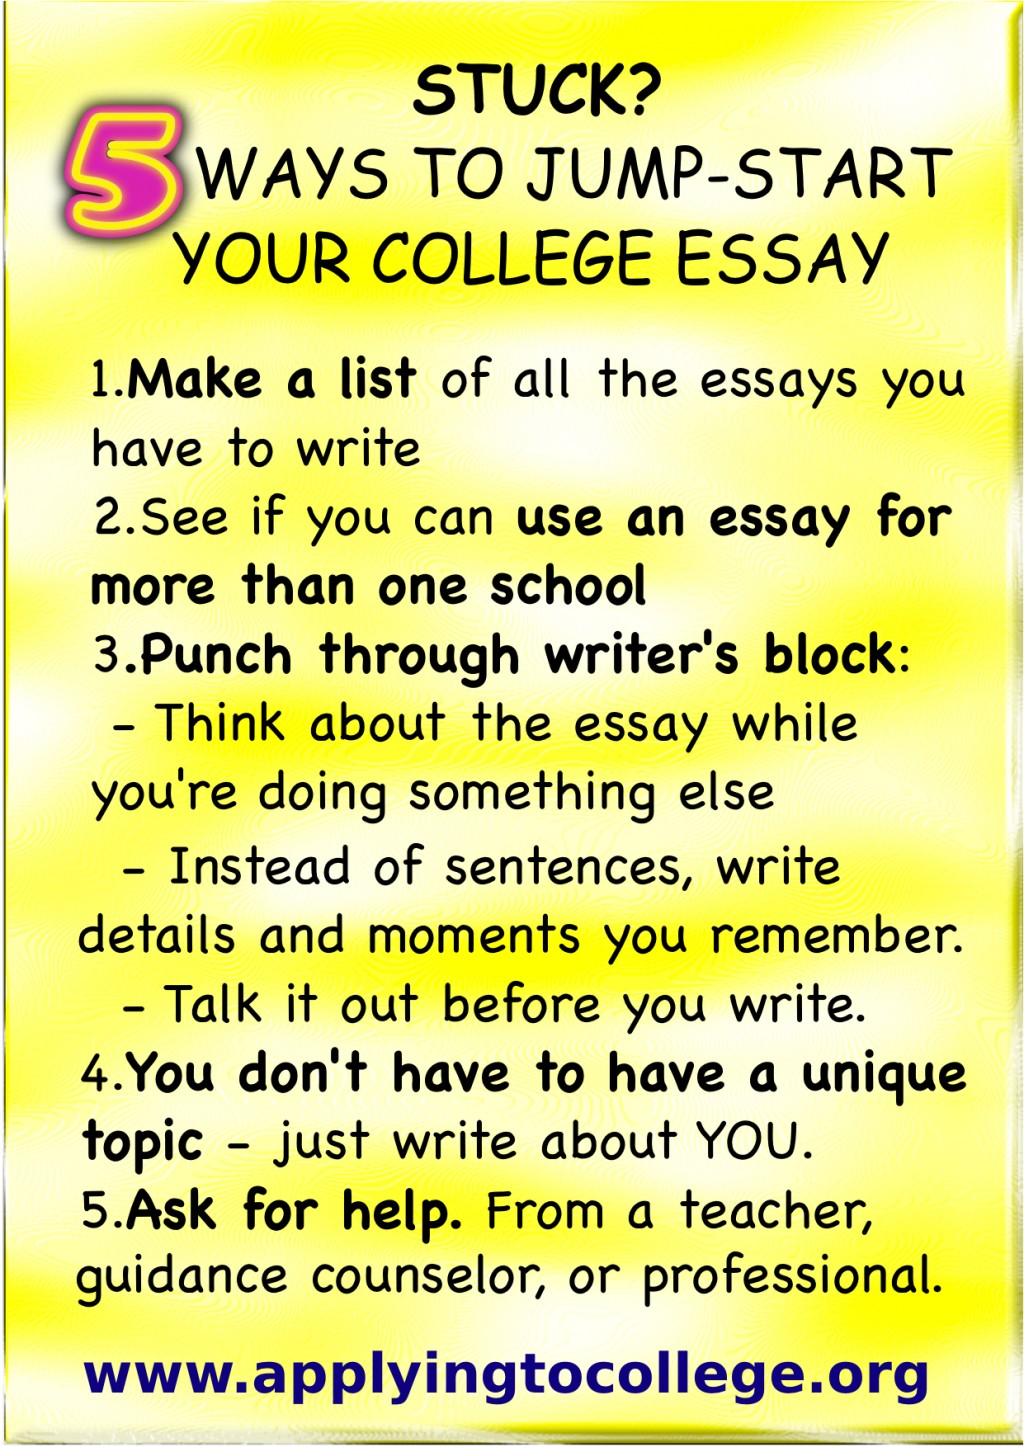 002 Essay Example Tips For Writing College Essays Ways To Reduce Singular 10 Good Application Best Large